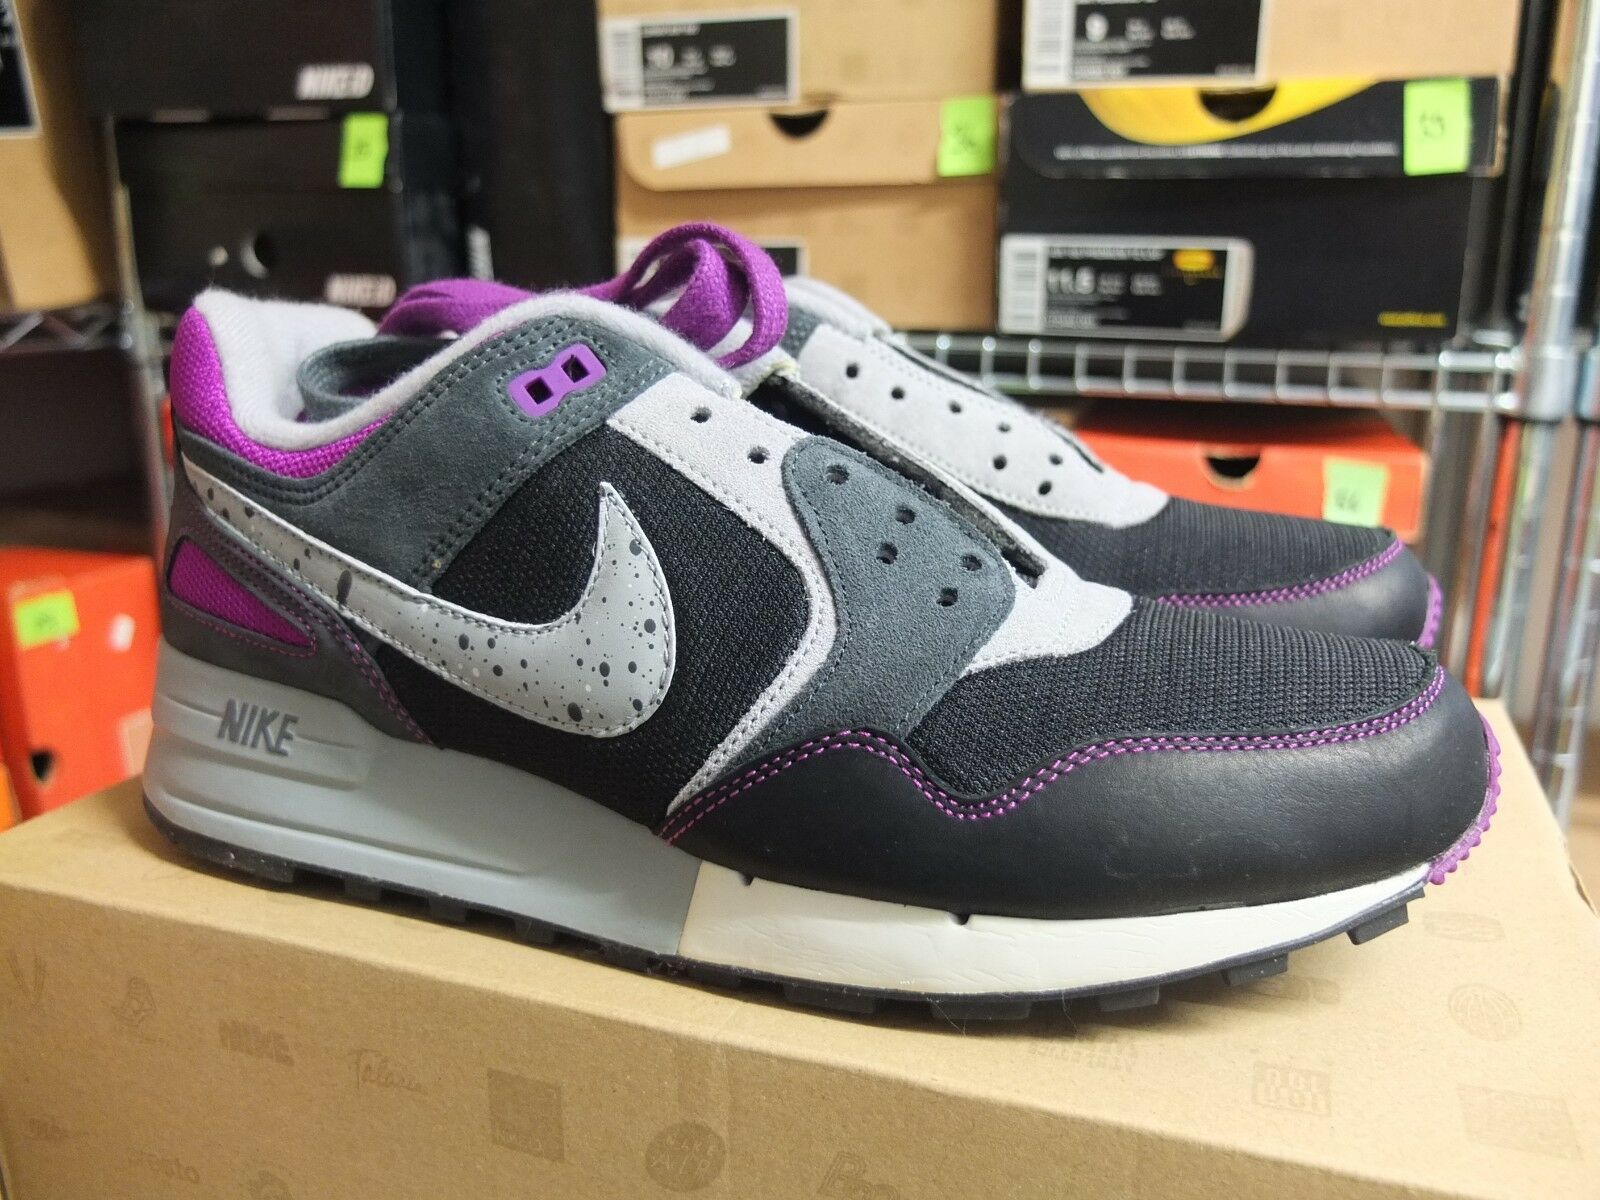 2009 Nike Air Pegasus 89 Berlin US9.5 DS Patta Kaws Atmos